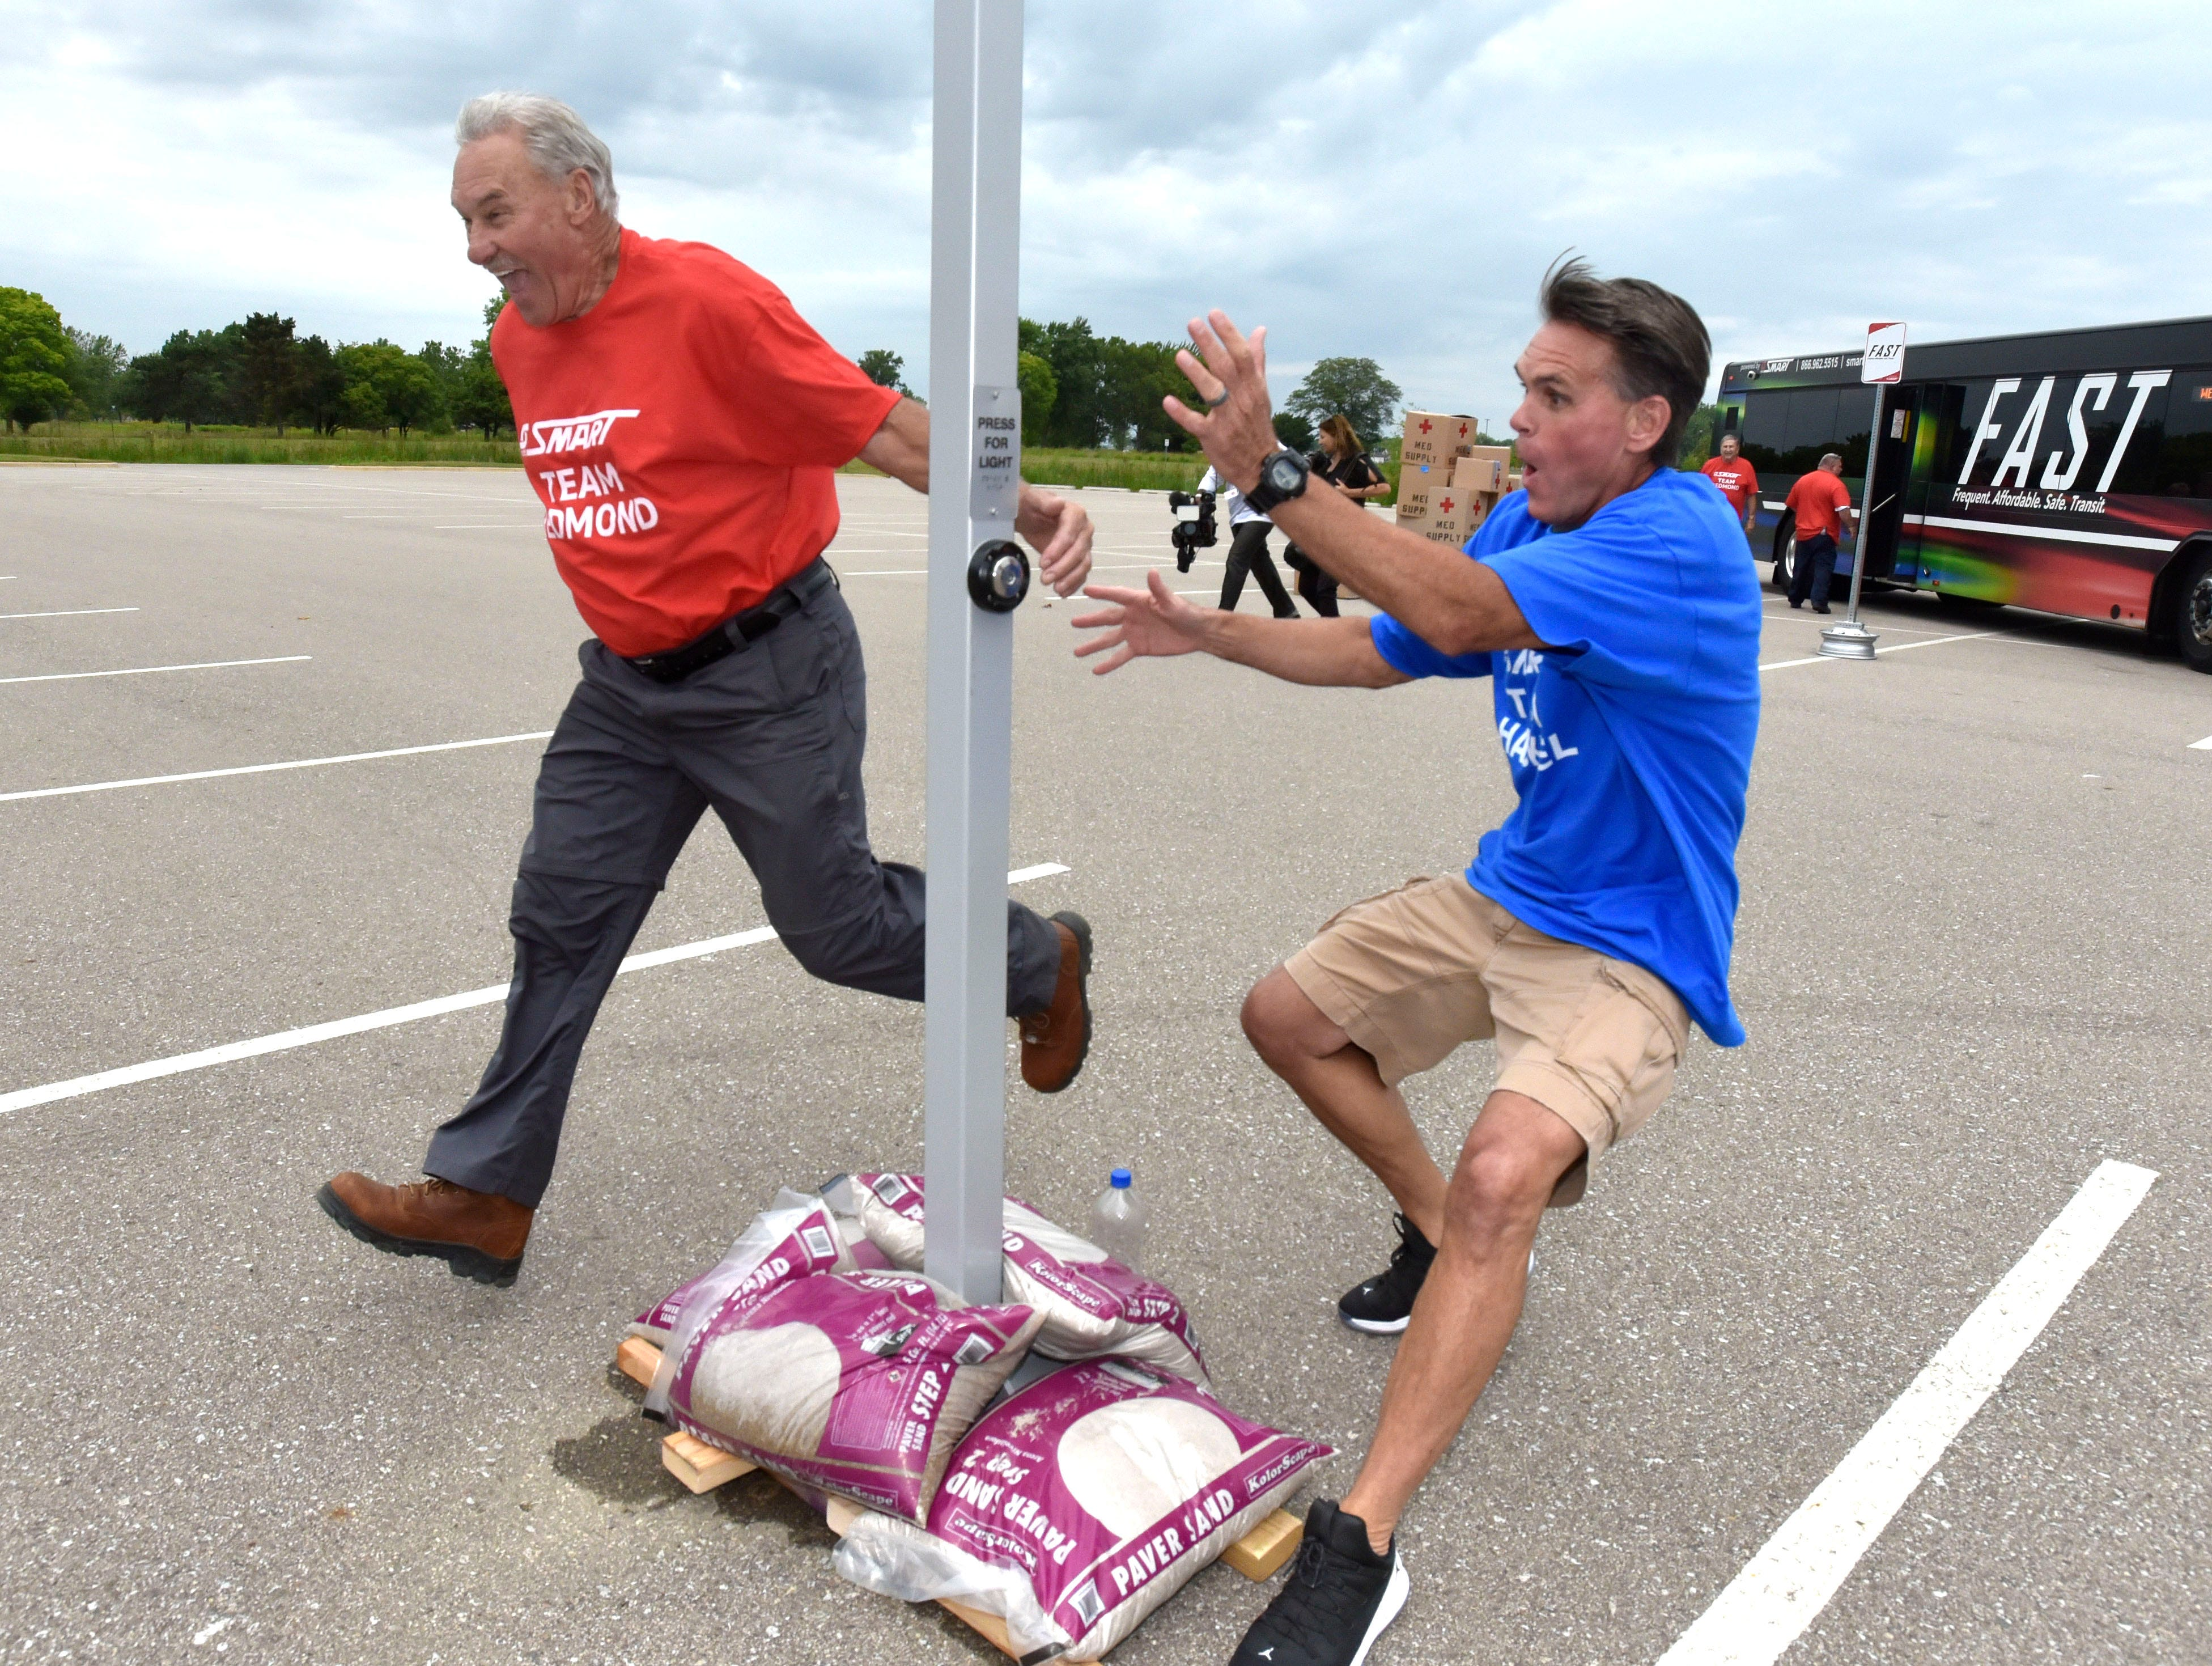 Red Wings great Mickey Redmond, left, laughs as he pushes the finish button just before Macomb County Executive Mark Hackel during a race at Lake St. Clair Metropark in Harrison Twp., August 1, 2018. The SMART regional transit system was demonstrating the importance of buses during a potential disaster, with two teams loading emergency supplies on and off the vehicles to see which had the fastest response time.